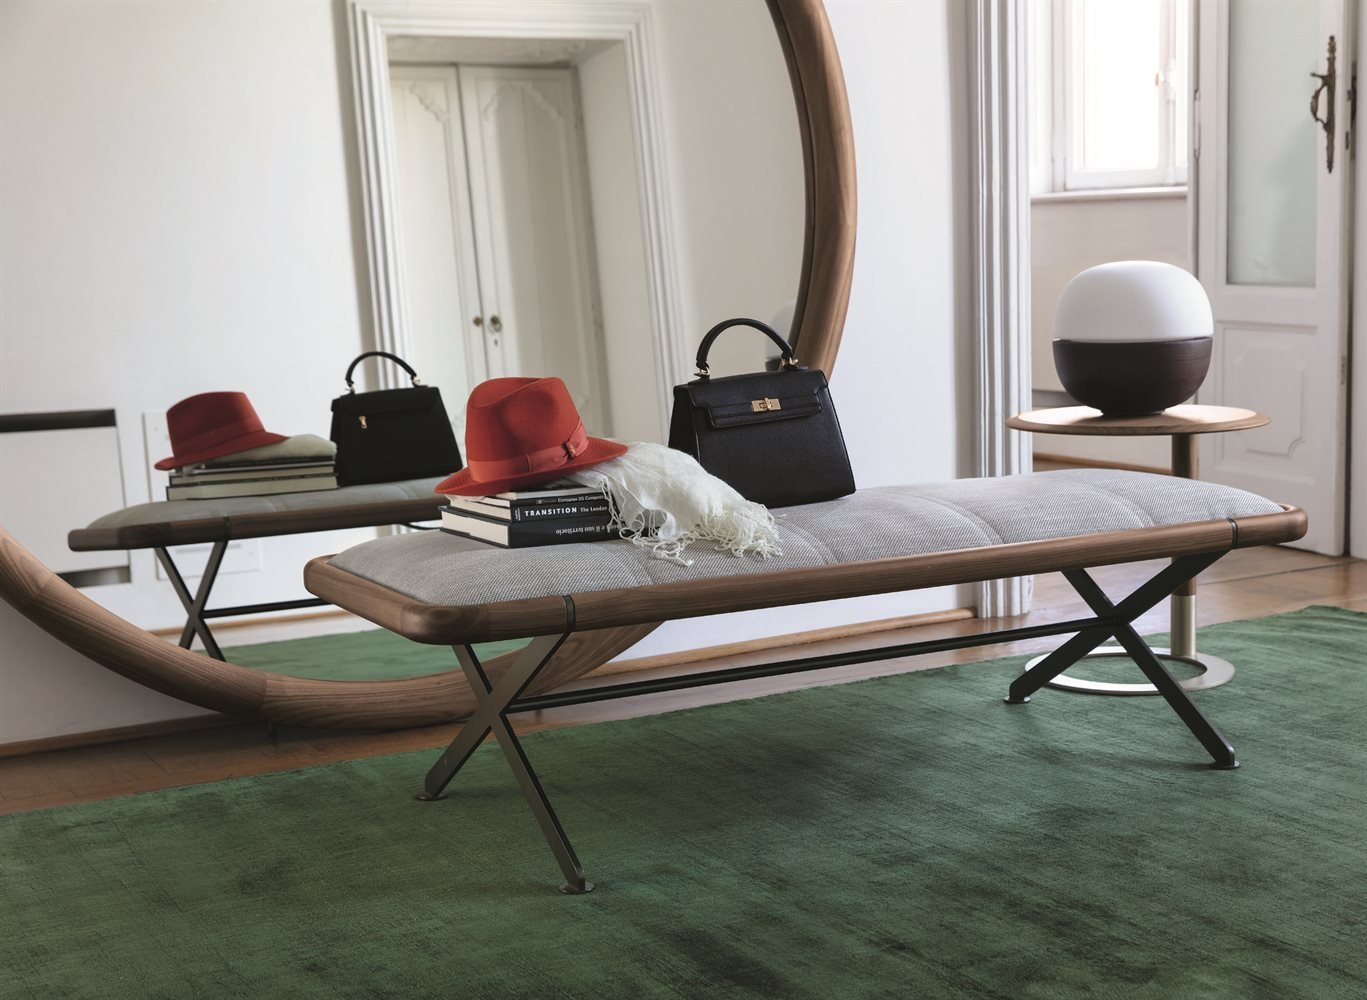 Axxia Bench from Porada, designed by T. Colzani